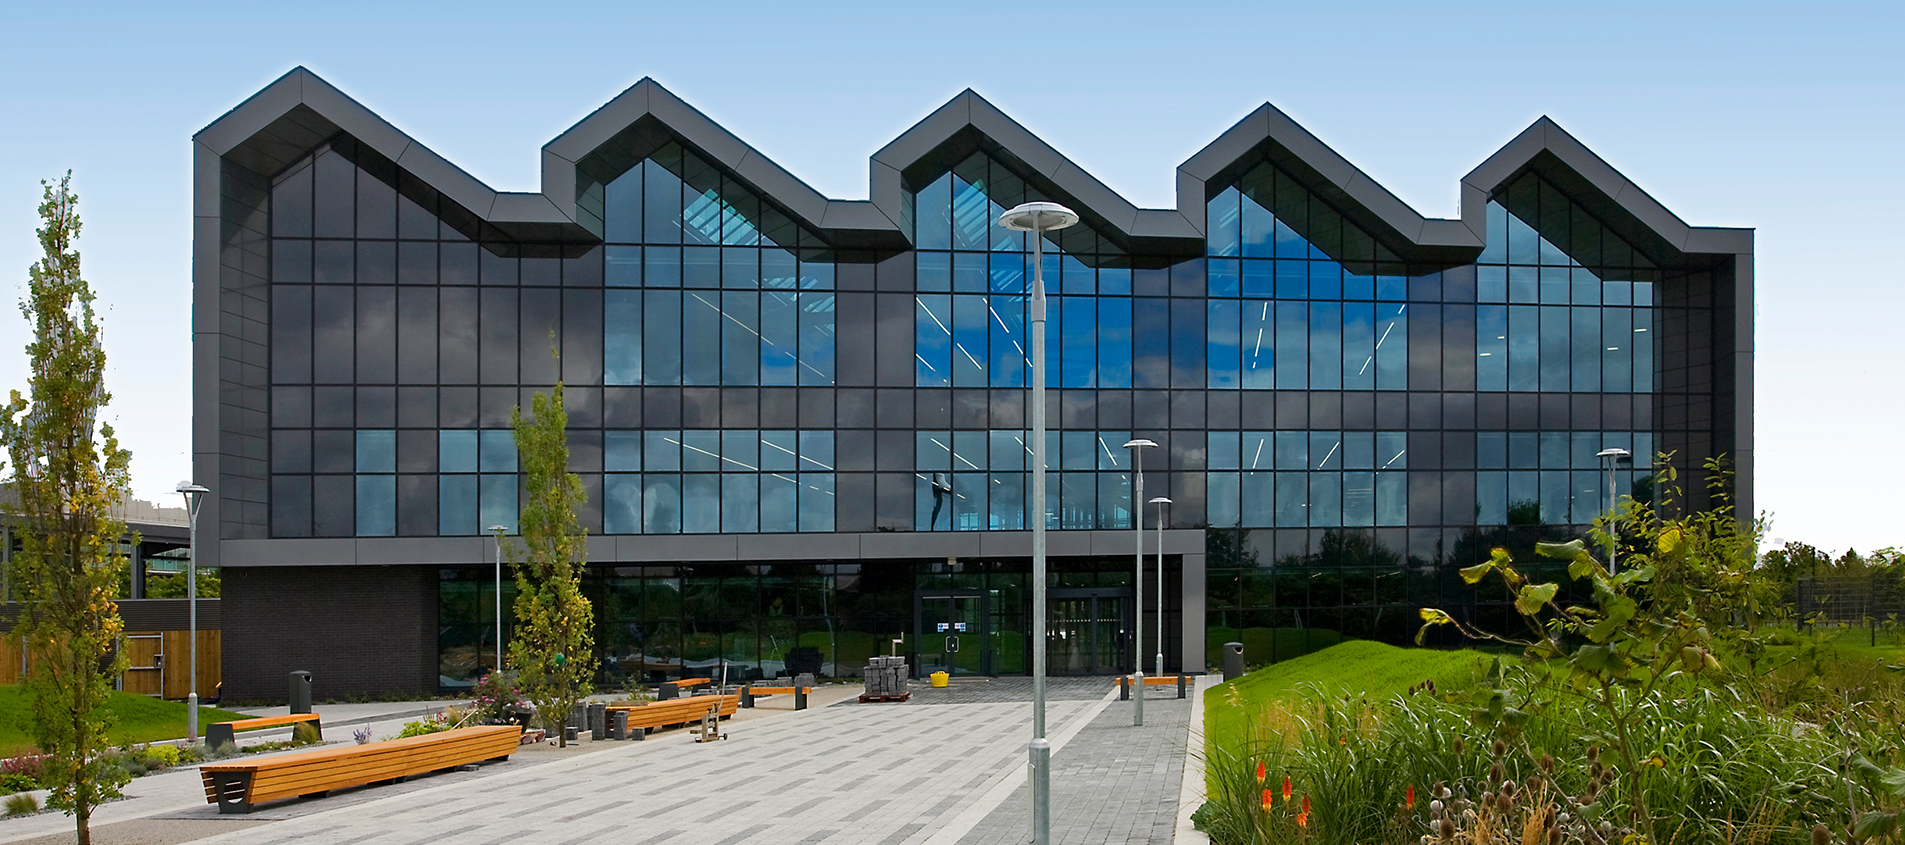 National College for High Speed Rail, Doncaster